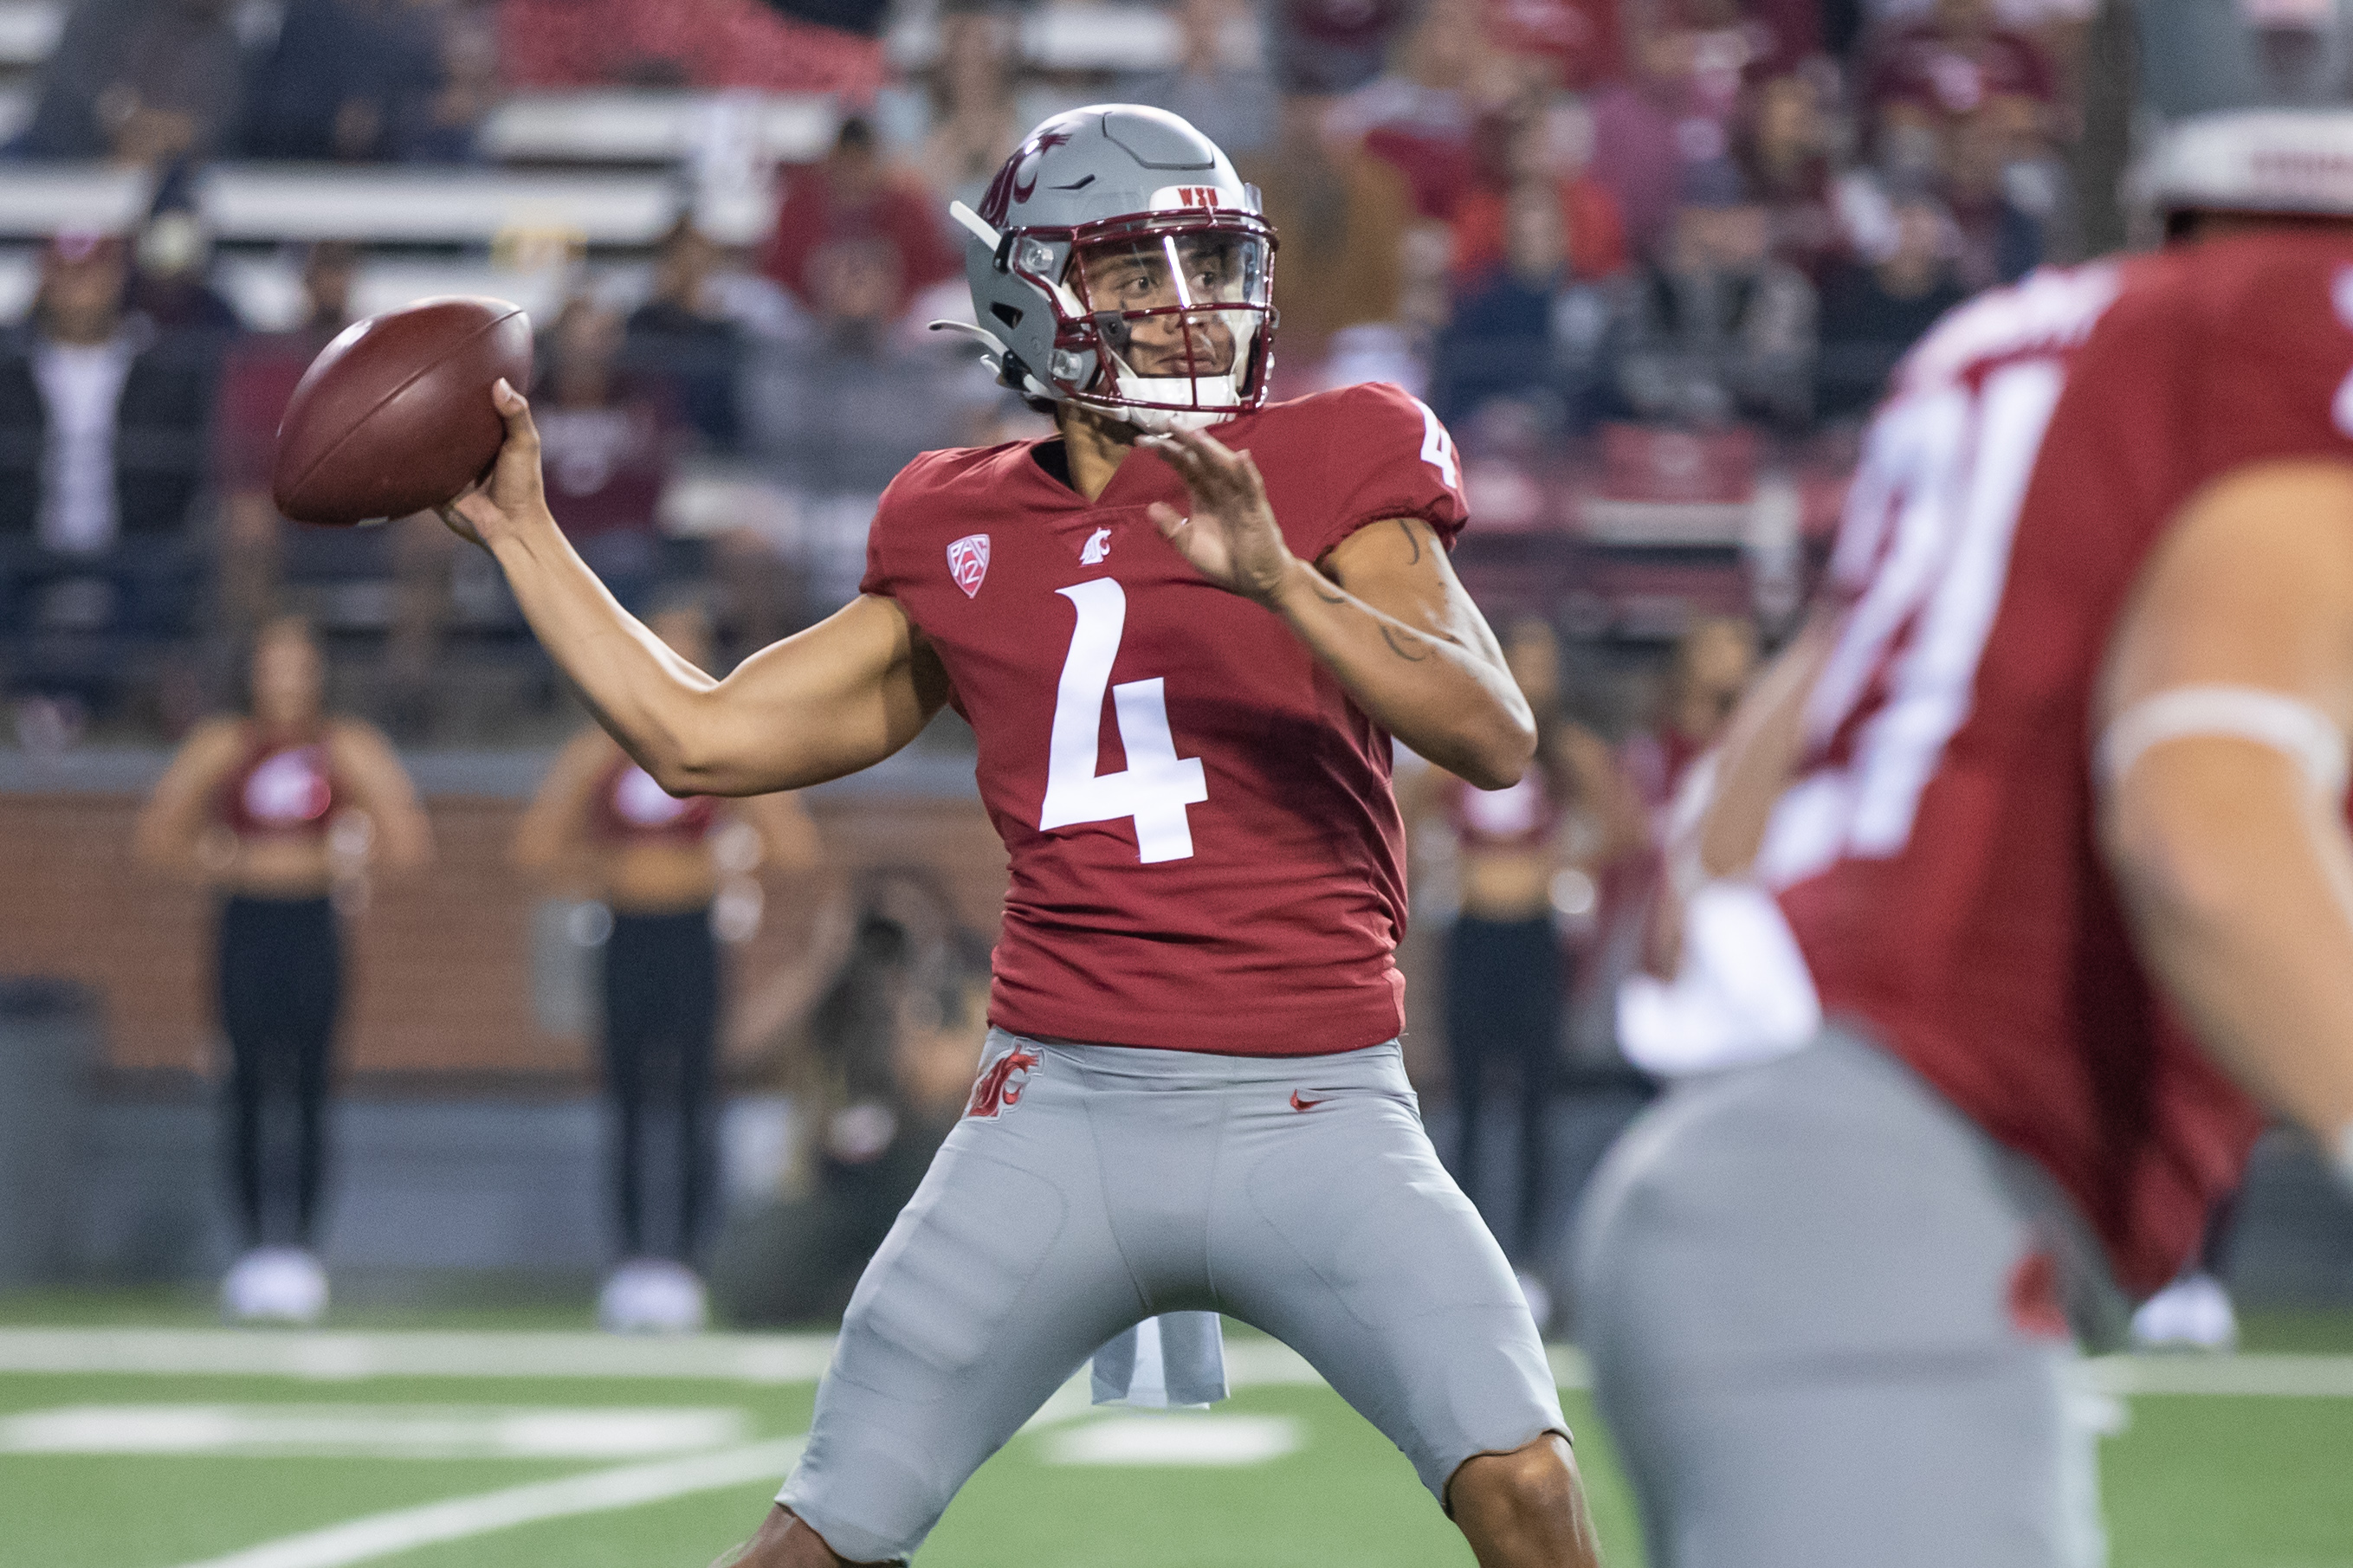 PULLMAN, WA - SEPTEMBER 4: Washington State quarterback Jayden de Laura (4) throws a pass during the first half of a non-conference matchup between the Utah State Aggies and the Washington State Cougars on September 4, 2021, at Martin Stadium in Pullman, WA.